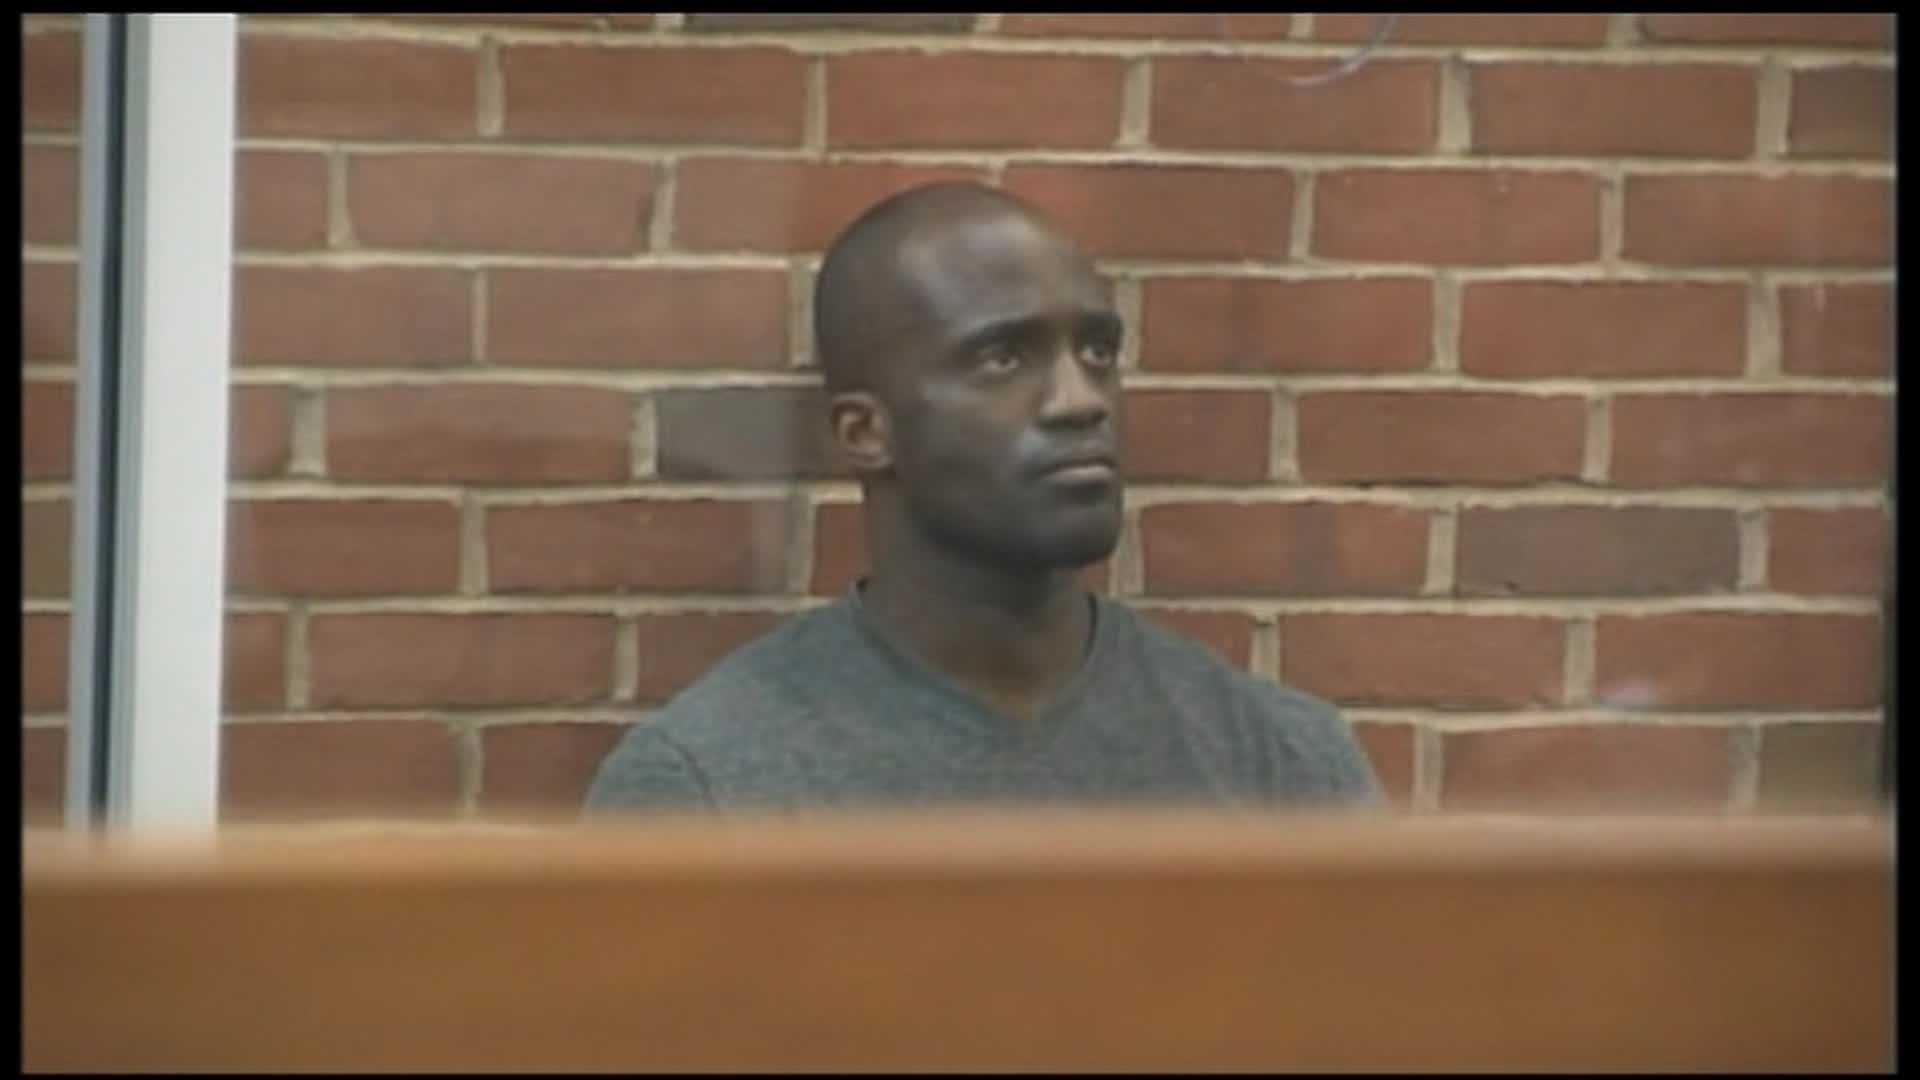 Patrick Ladapo in court on Aug. 29, 2013.